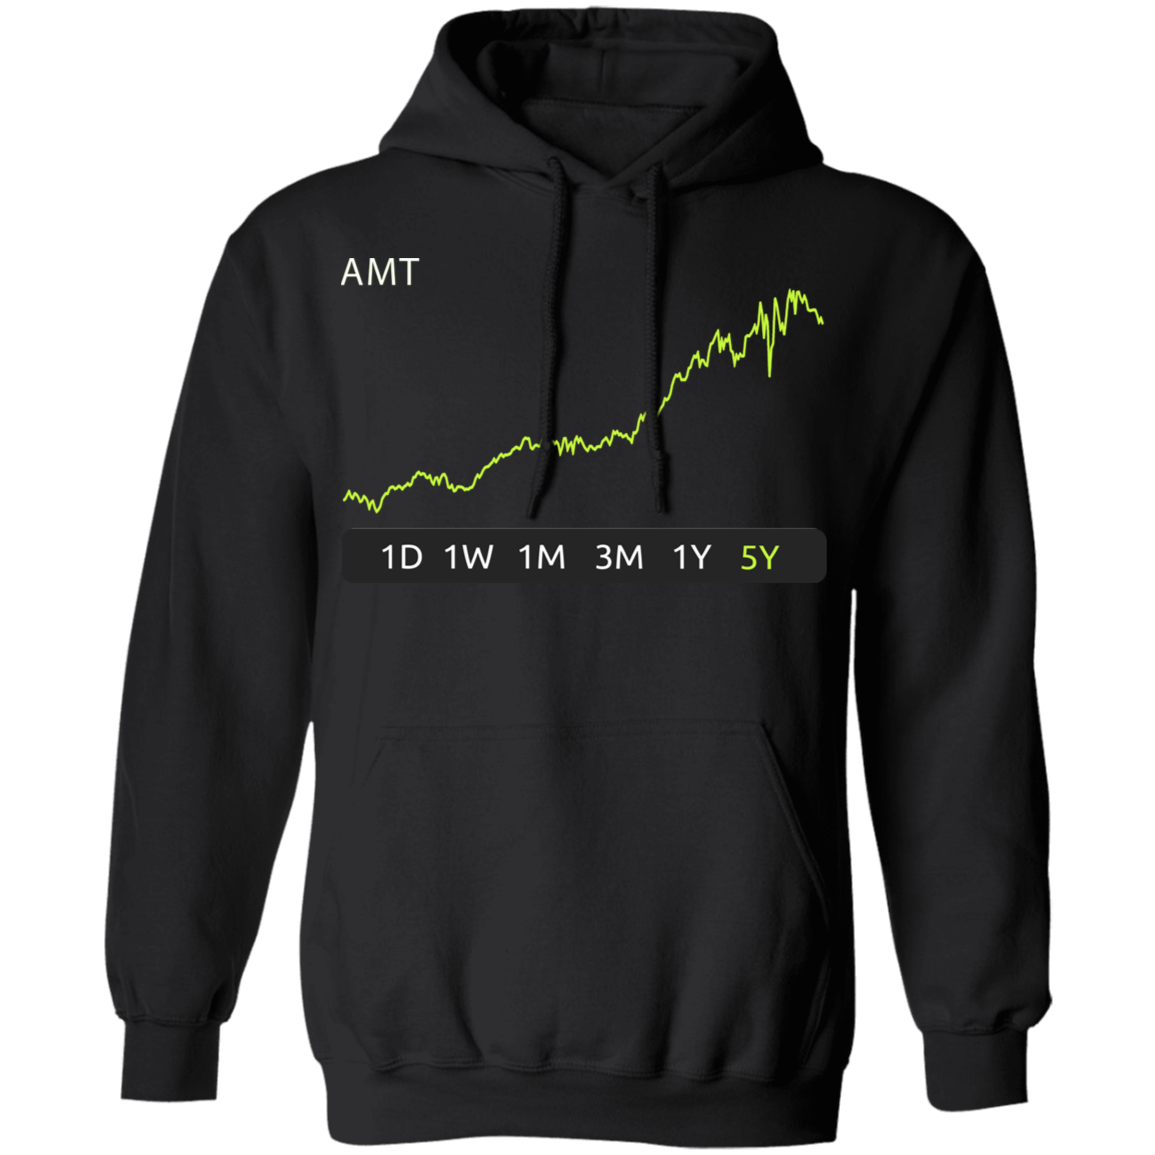 AMT Stock 5y Pullover Hoodie